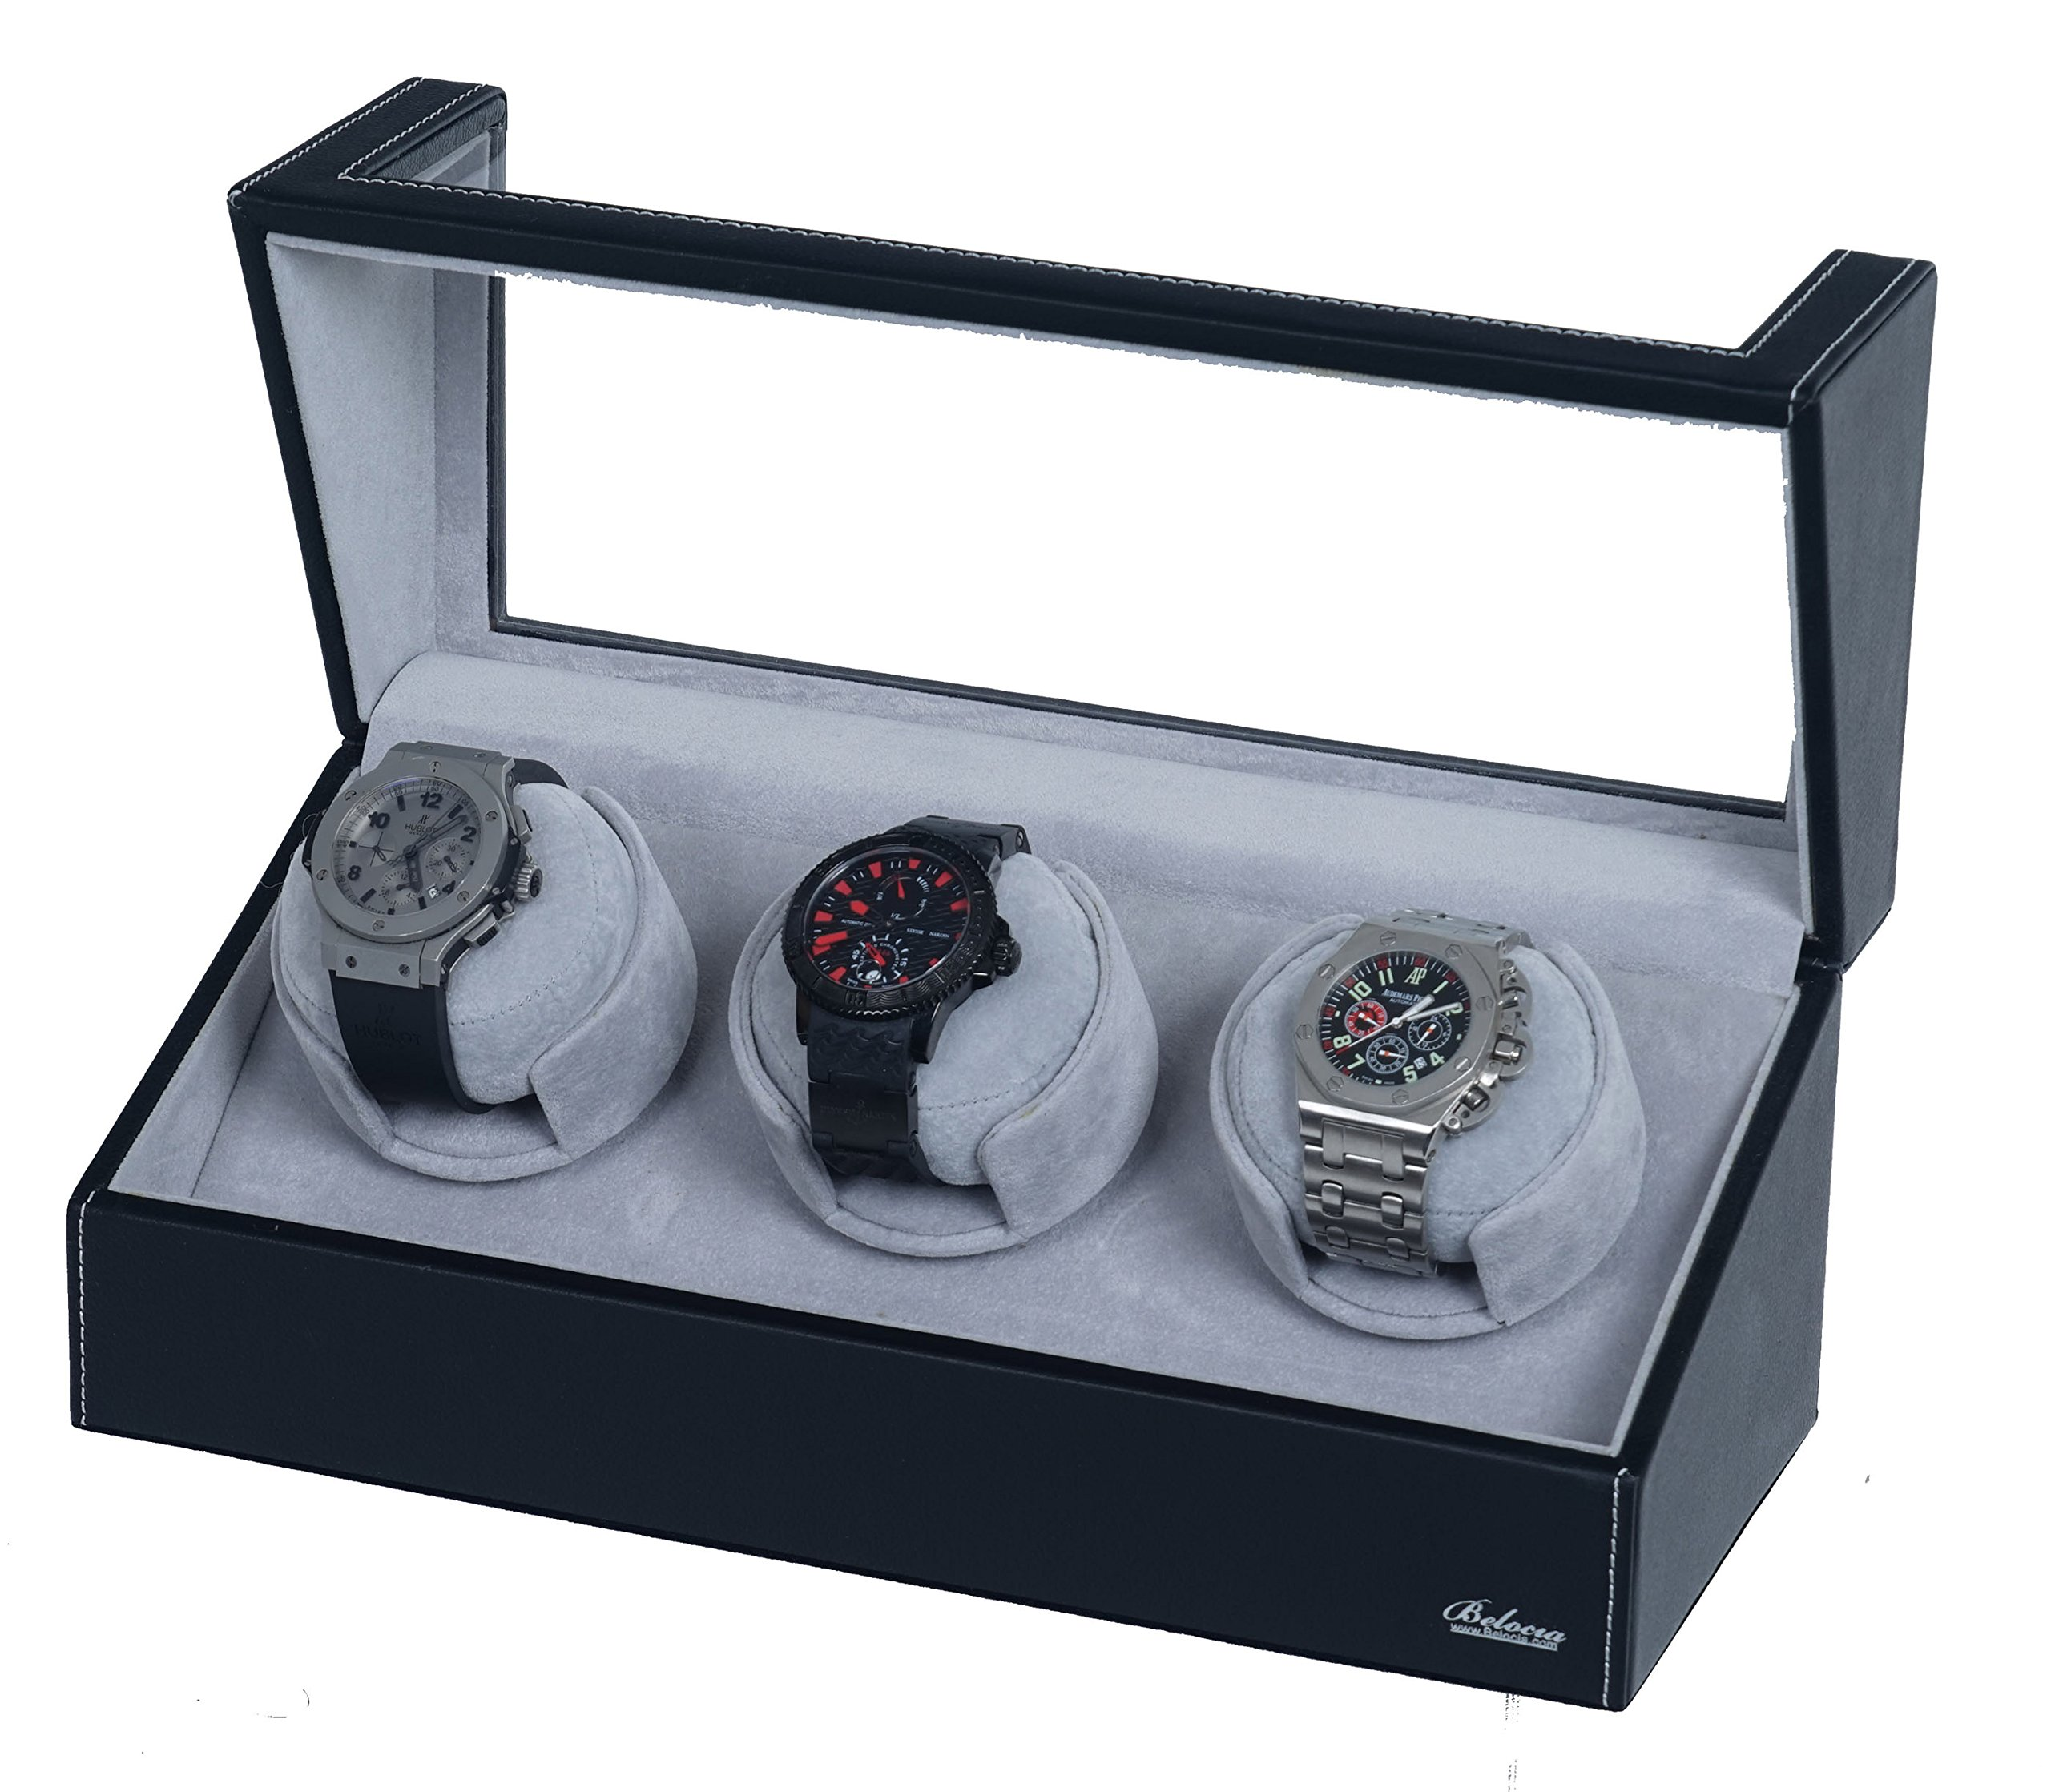 Watch Winder With Japanese Mabuchi Motor, 750, 1000, 1500 and 1800 TPD. (Black/GreyW3)